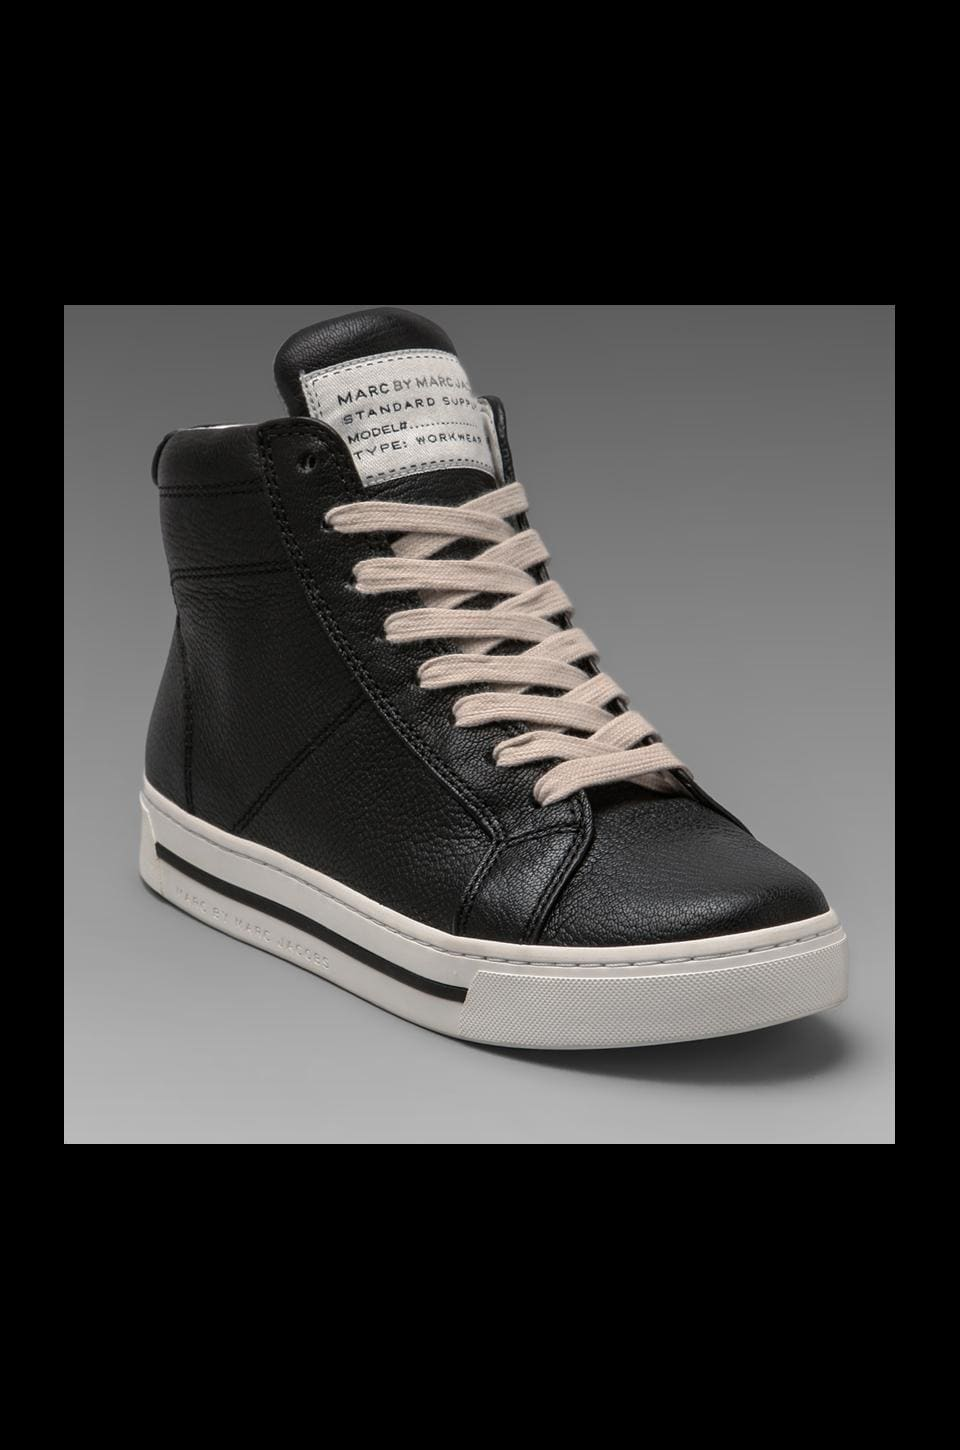 Marc by Marc Jacobs Glazed High Top Sneaker in Black